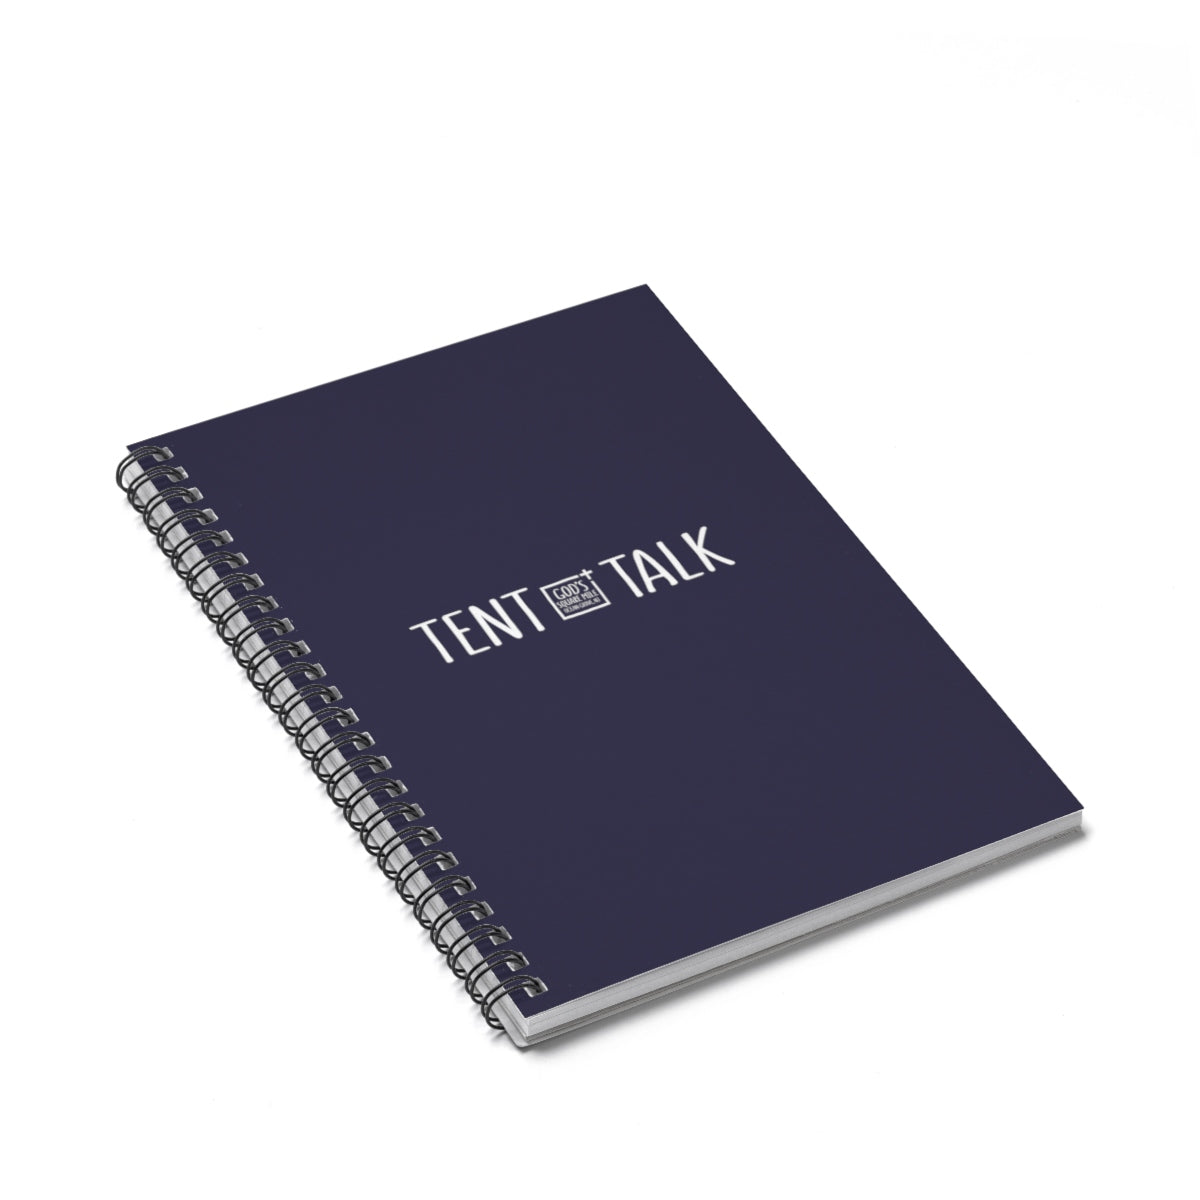 Tent Talk Spiral Notebook - Dark Blue